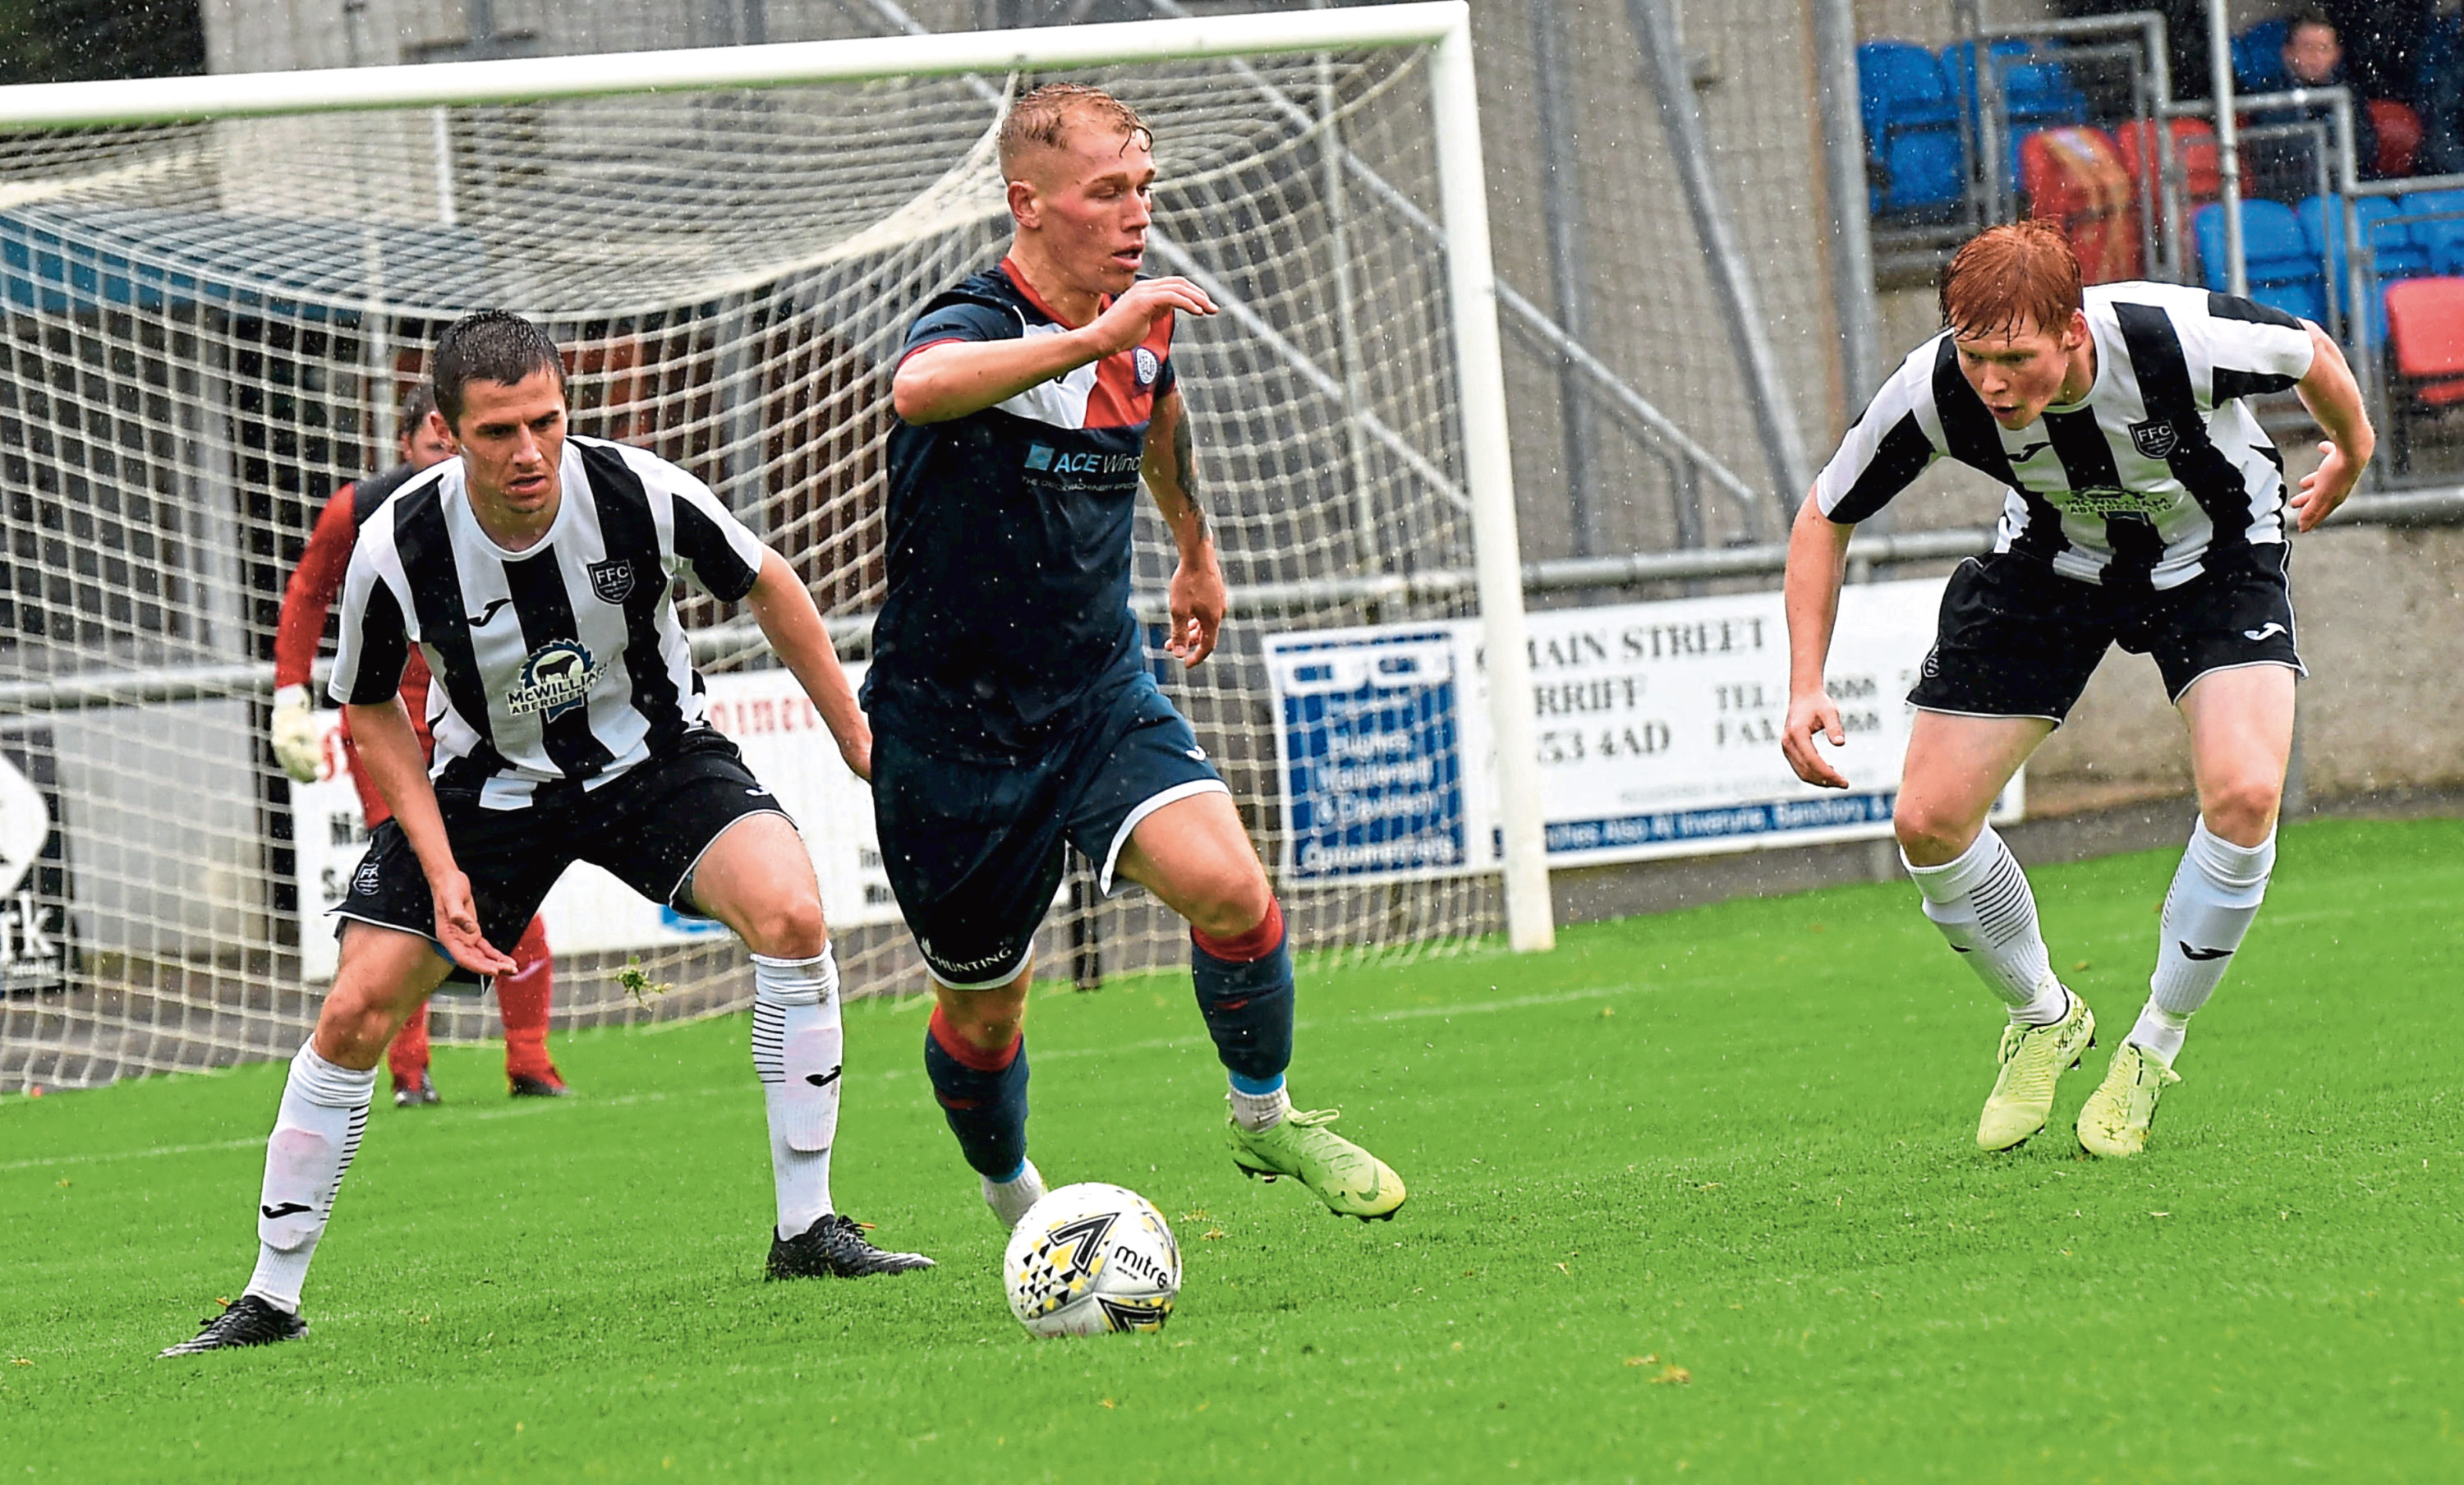 Fraserburgh's Owen Cairns, right. Picture by Heather Fowlie